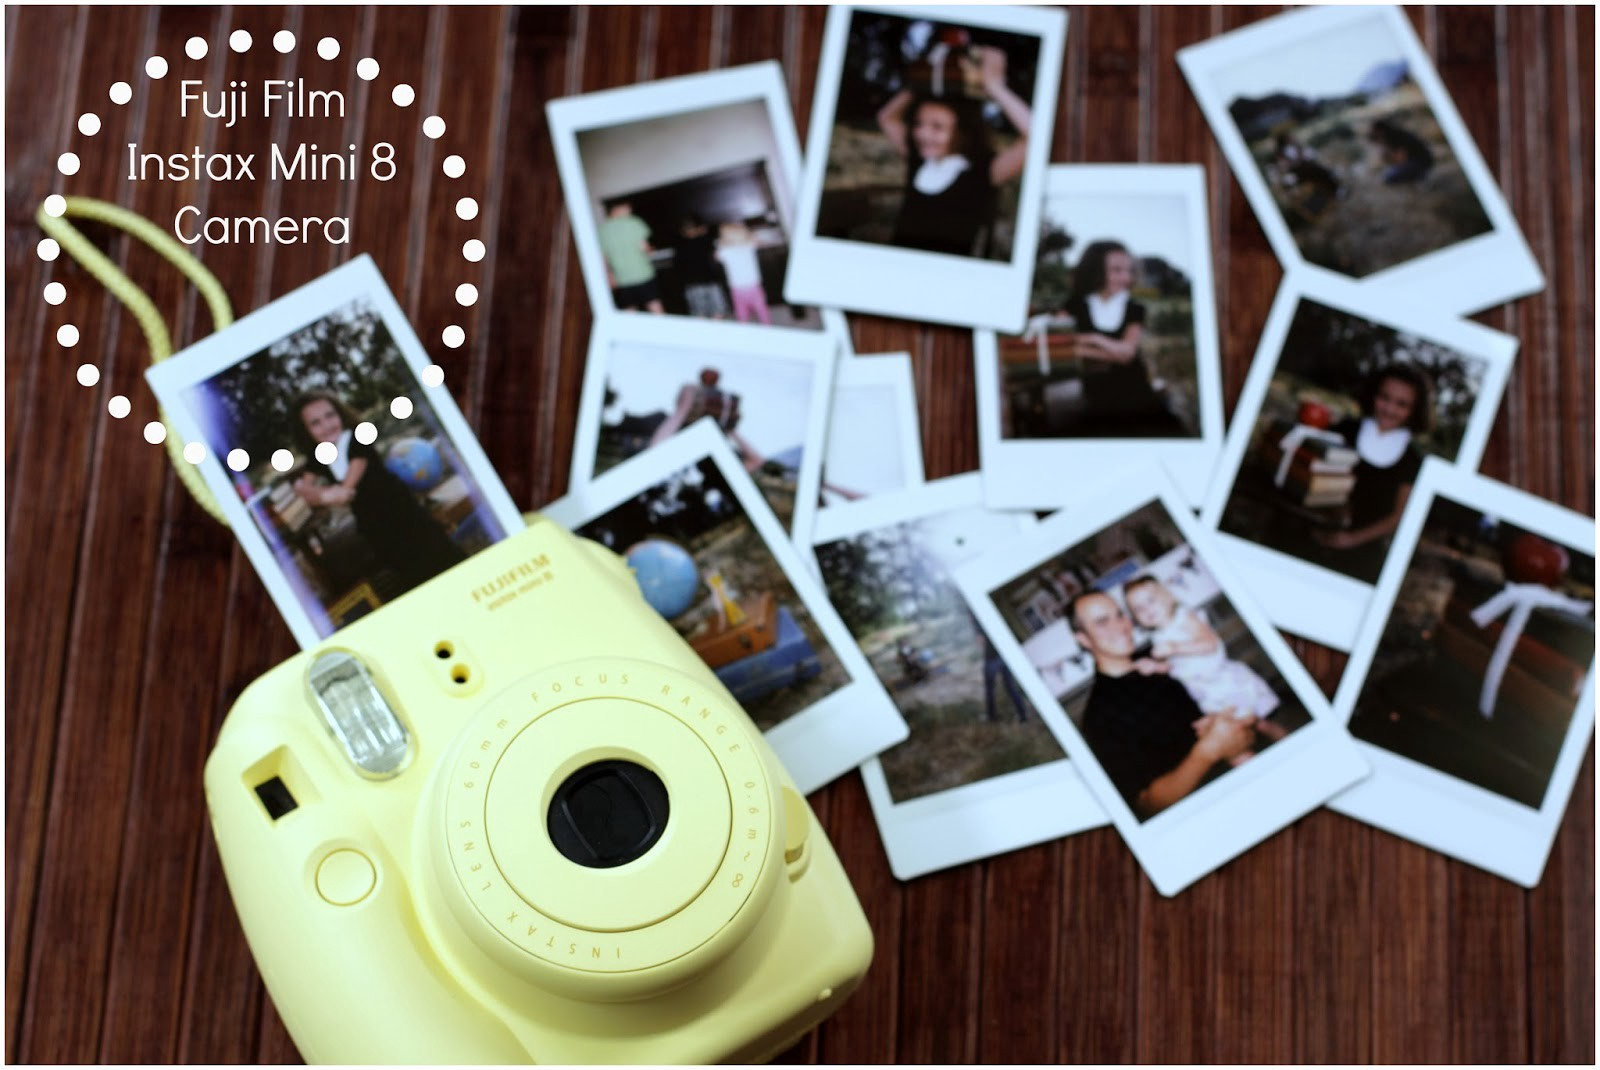 5 Genuine Reasons Why To Buy An Instant Camera Fuji Film Medium Different Types Of Digital Cameras Holding Such A Photography Device Gives Type Feel And You Love Hold It In Your Hands